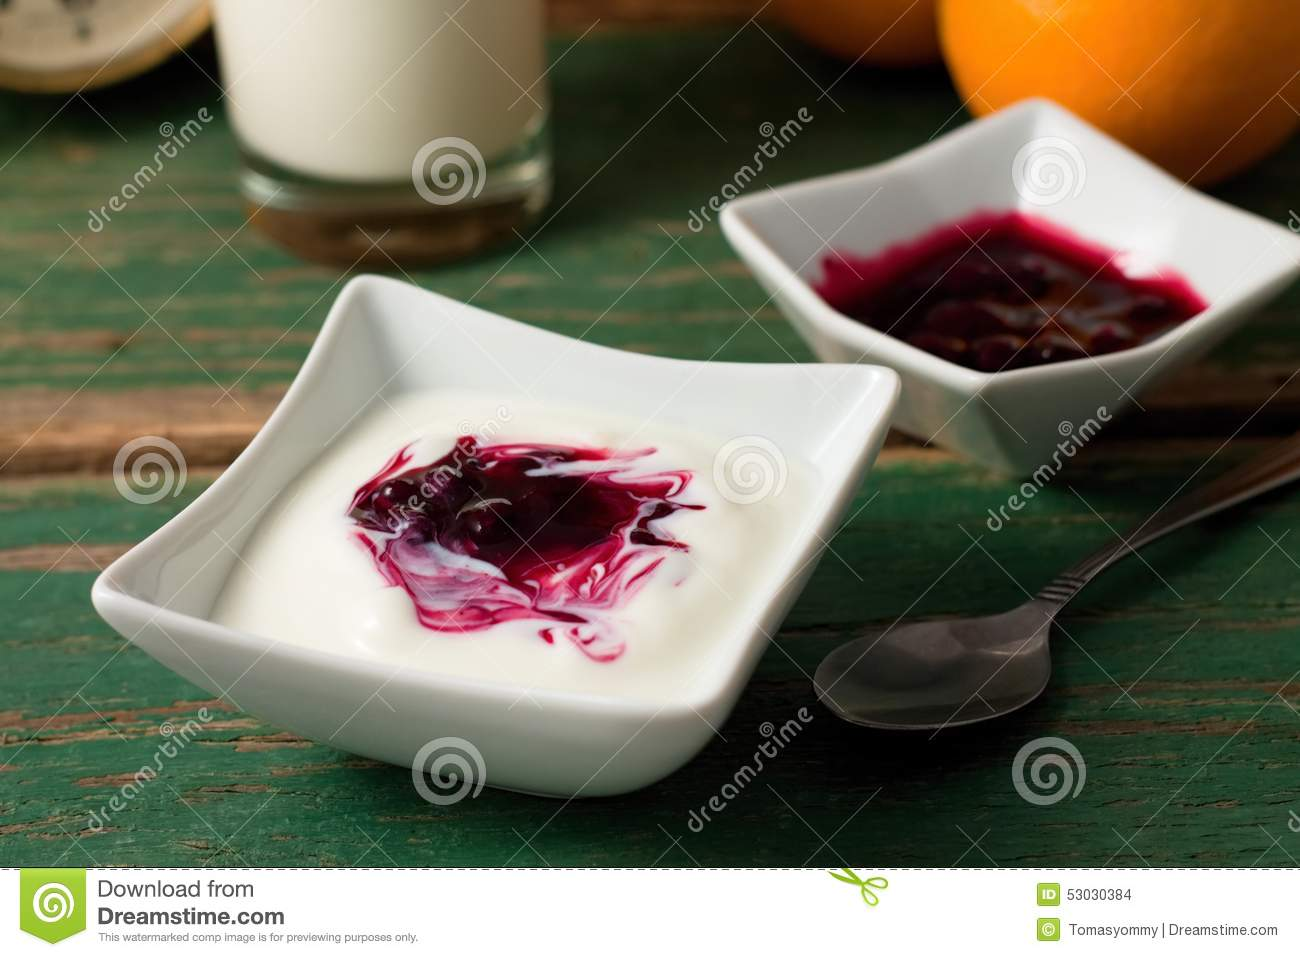 Red berry fruit in white yogurt placed with bowl on green table